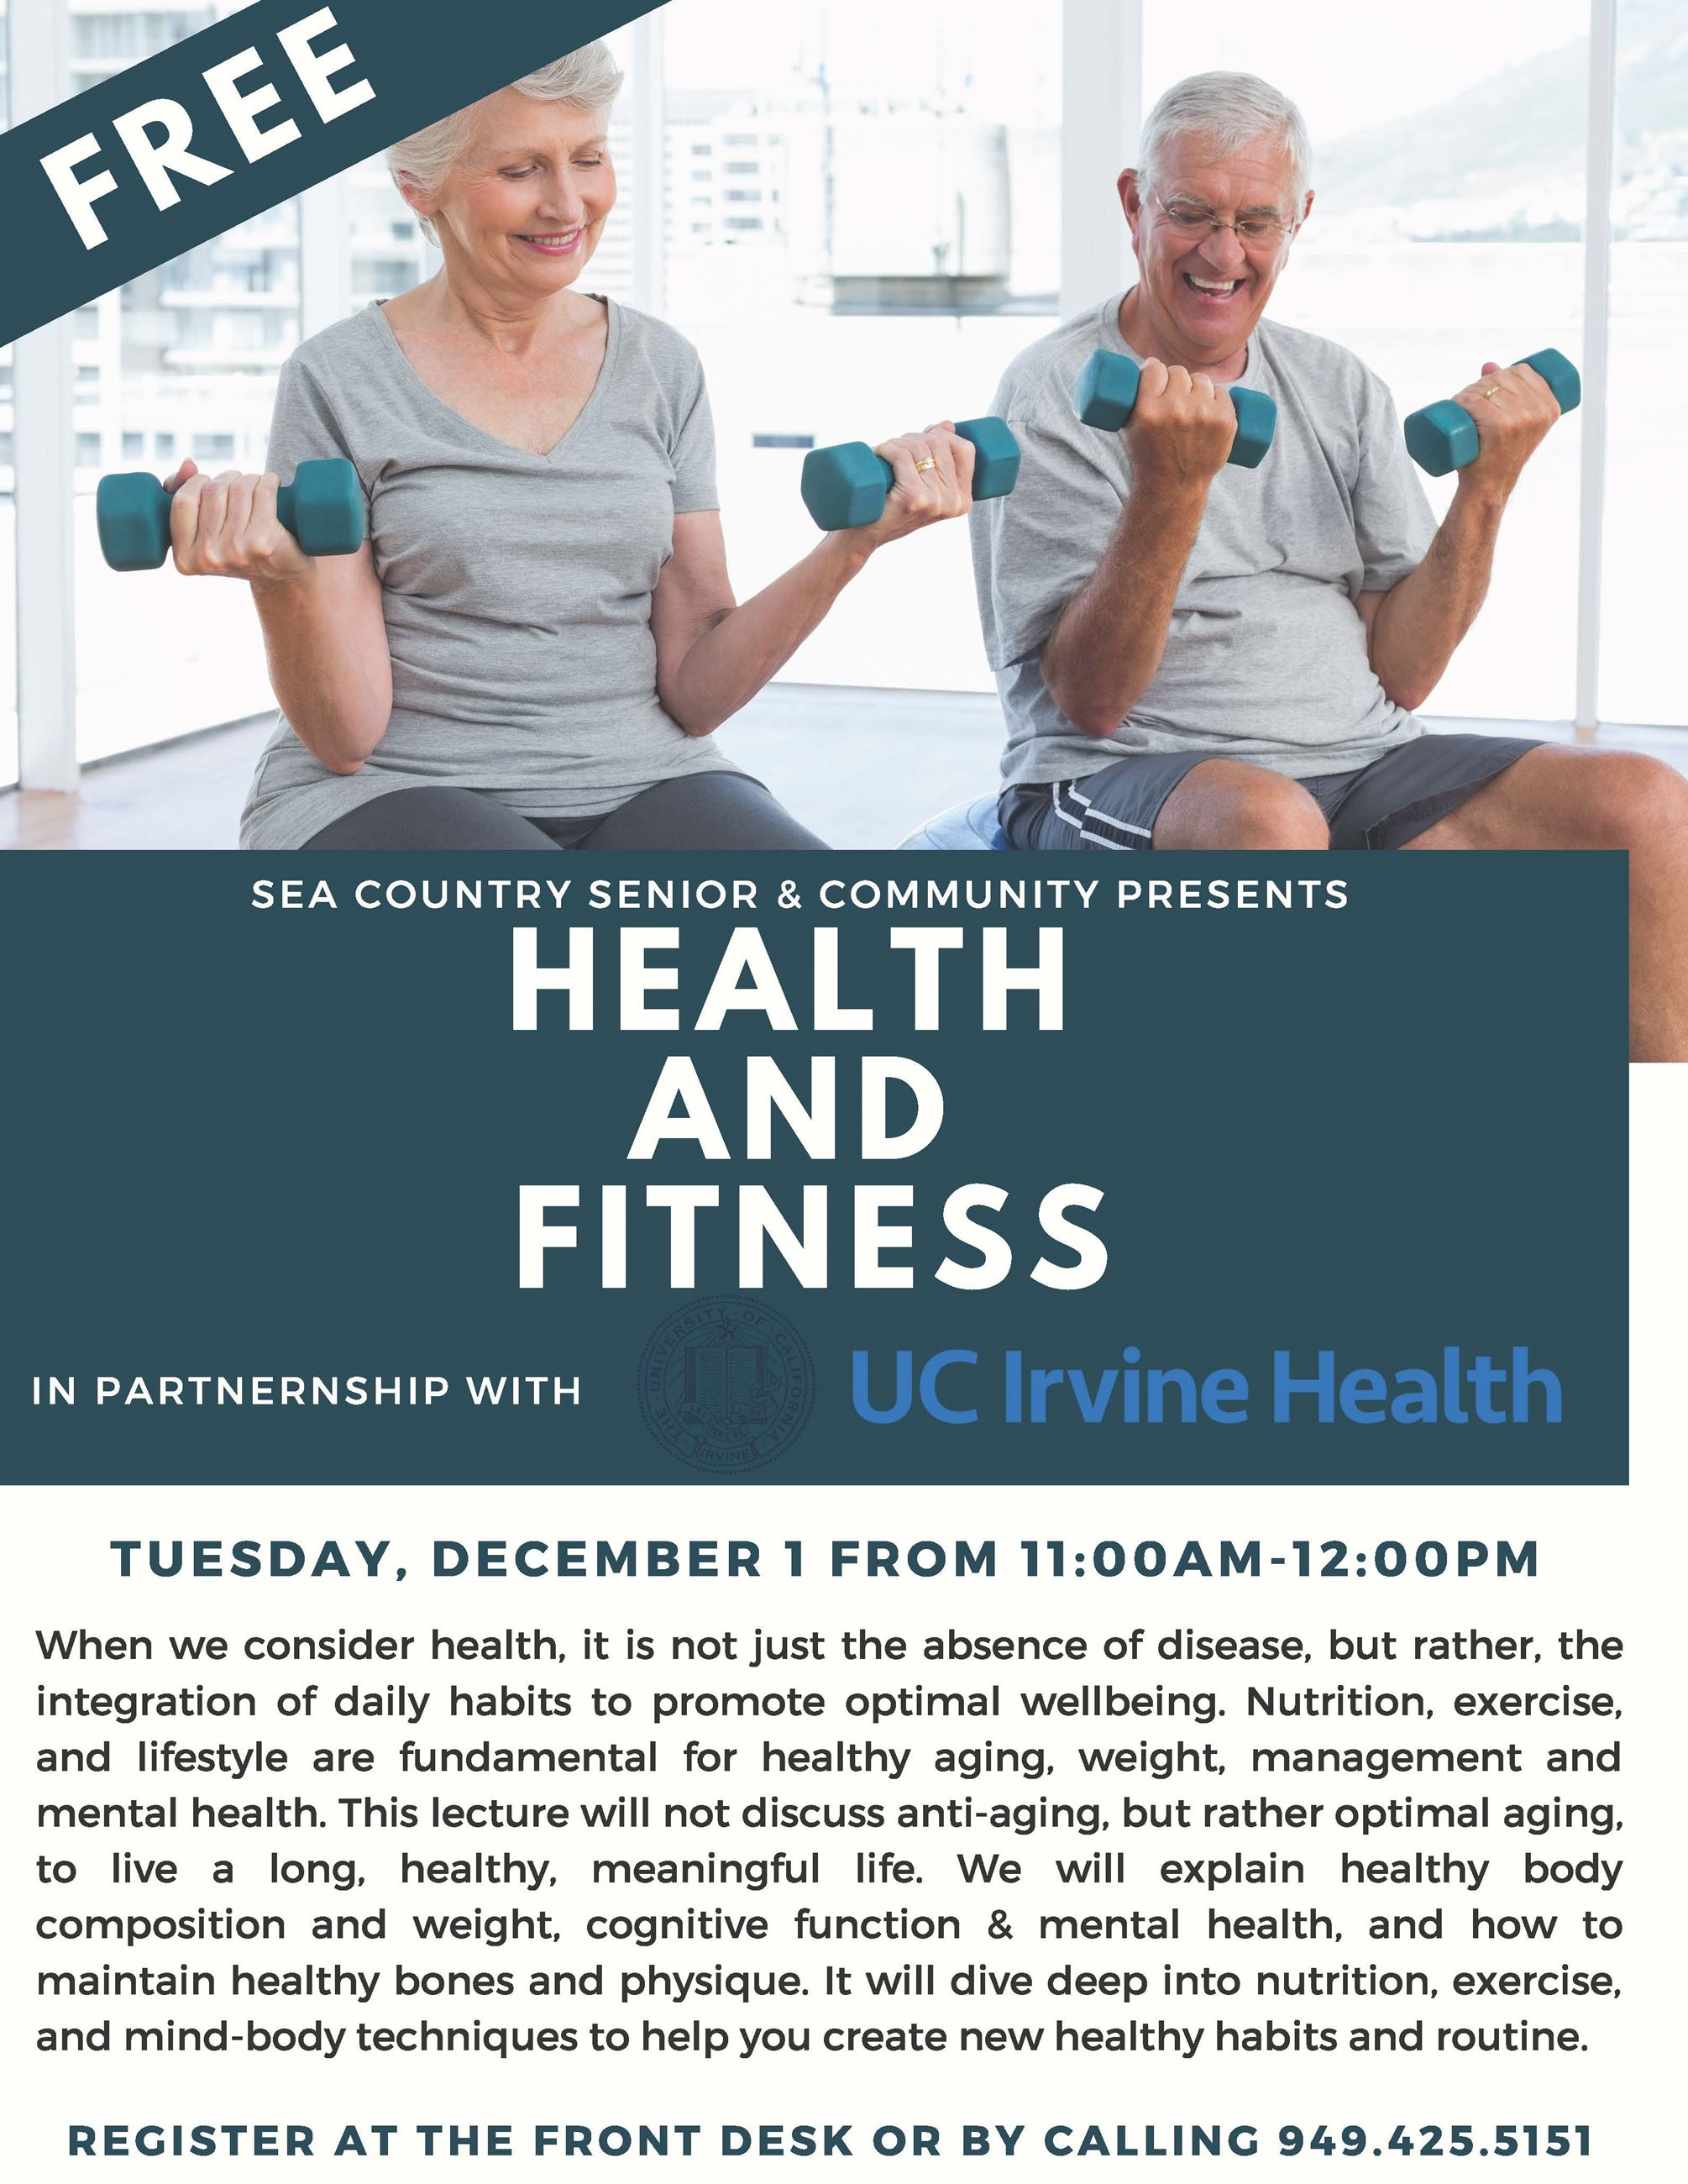 Winter 2020Lecture Flyer - Health and Fitness